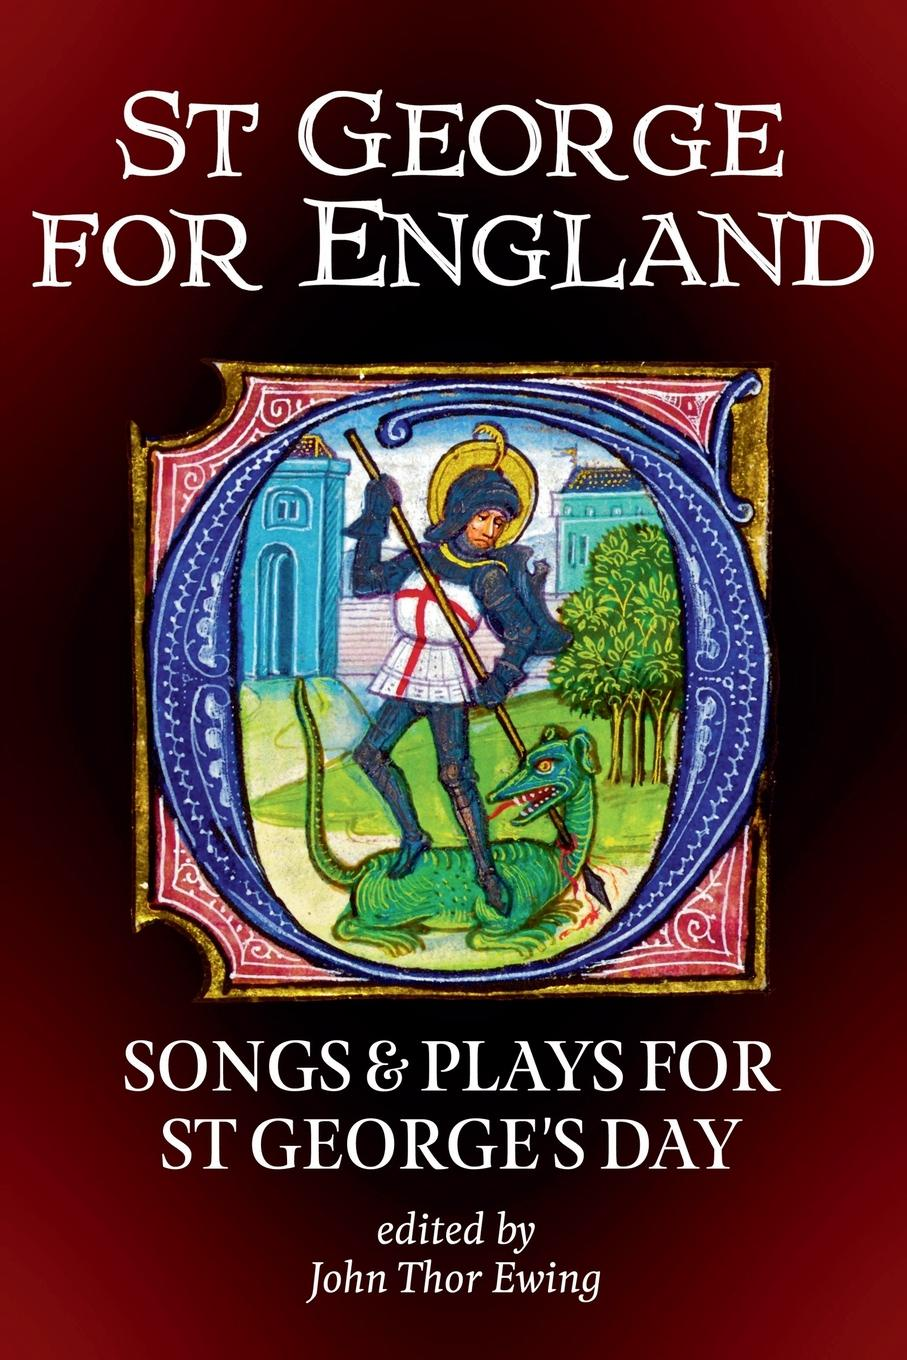 St George for England. Songs and Plays for St George.s Day st george for england songs and plays for st george s day